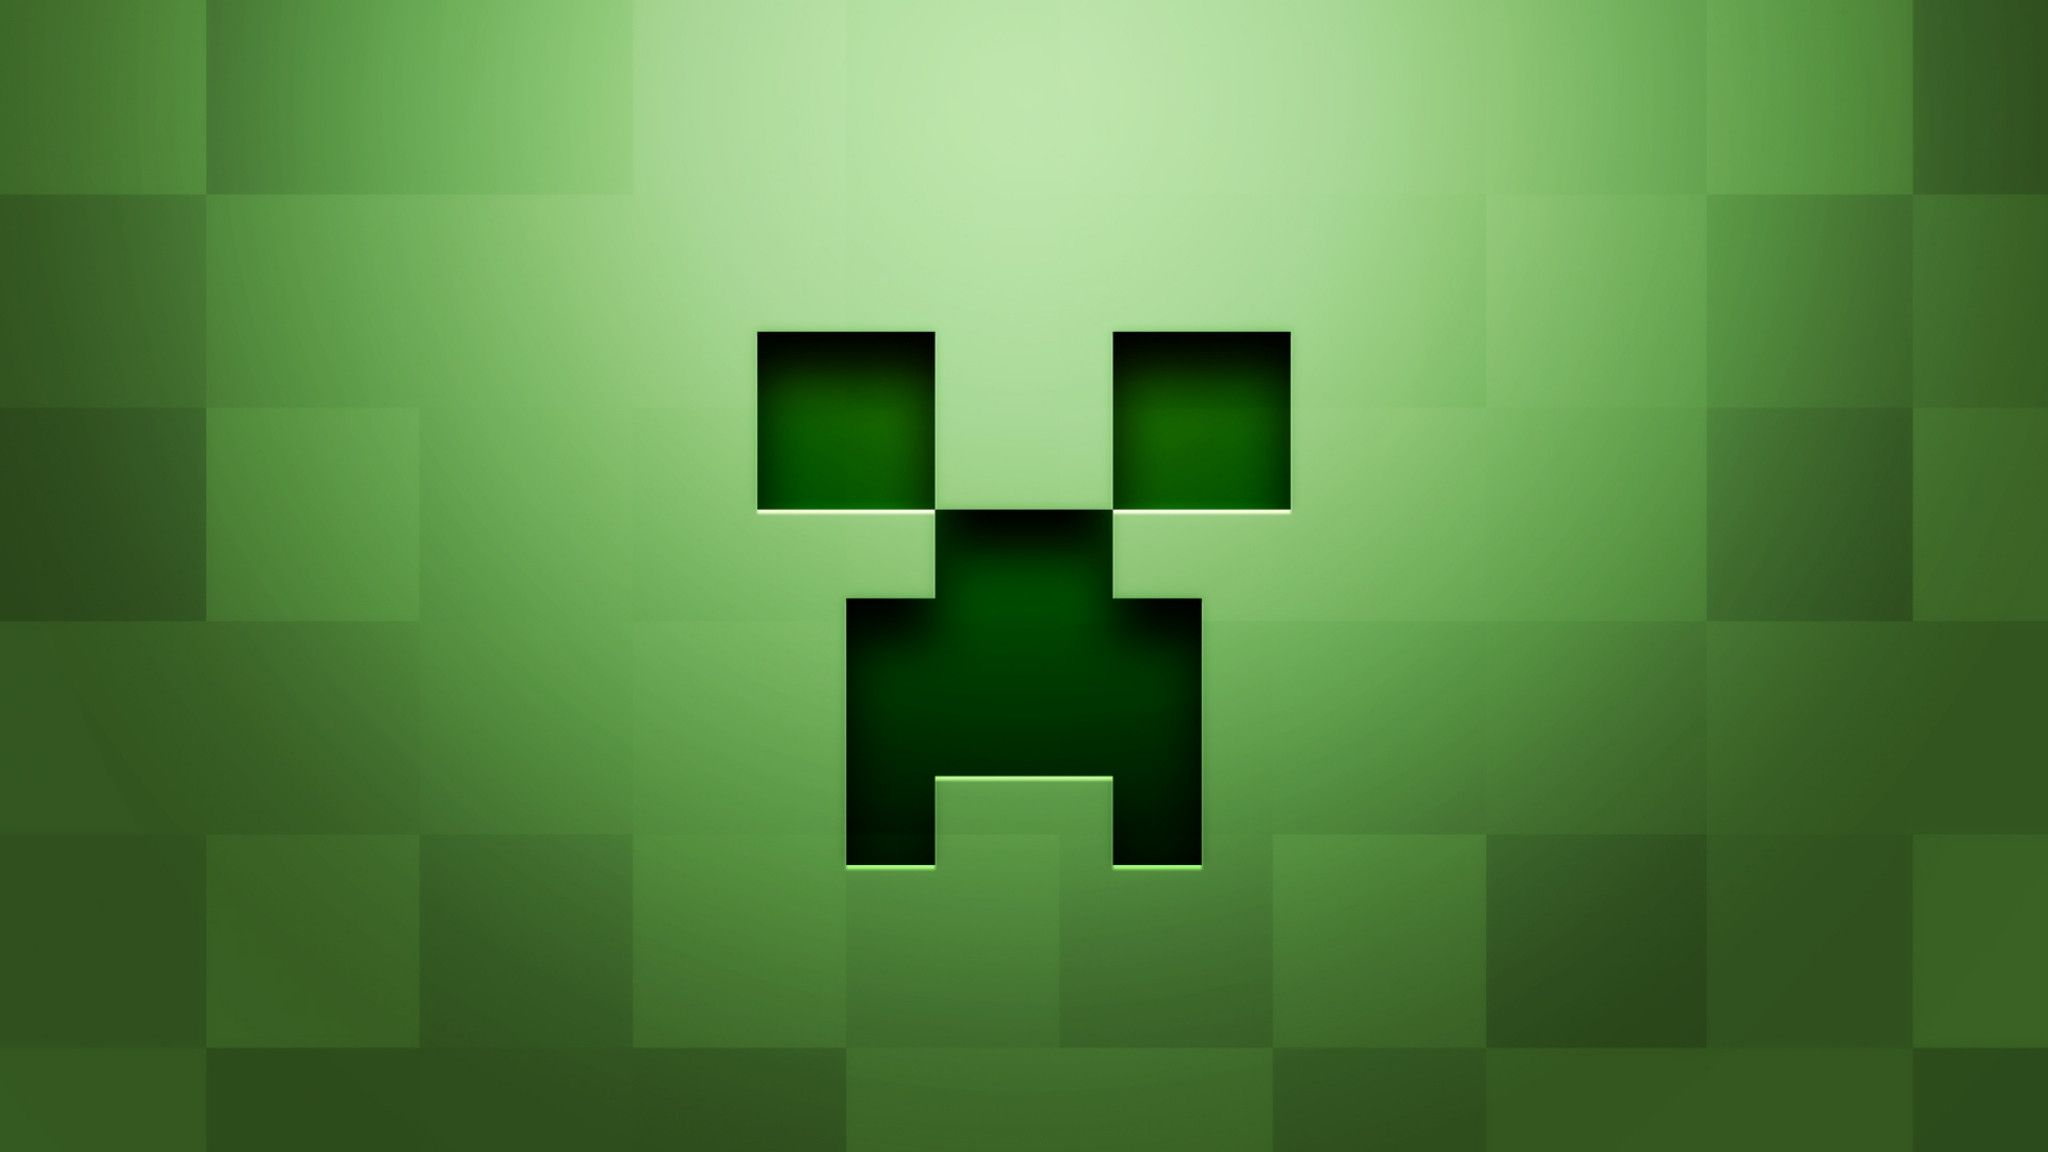 2048x1152 Minecraft Wallpapers Top Free 2048x1152